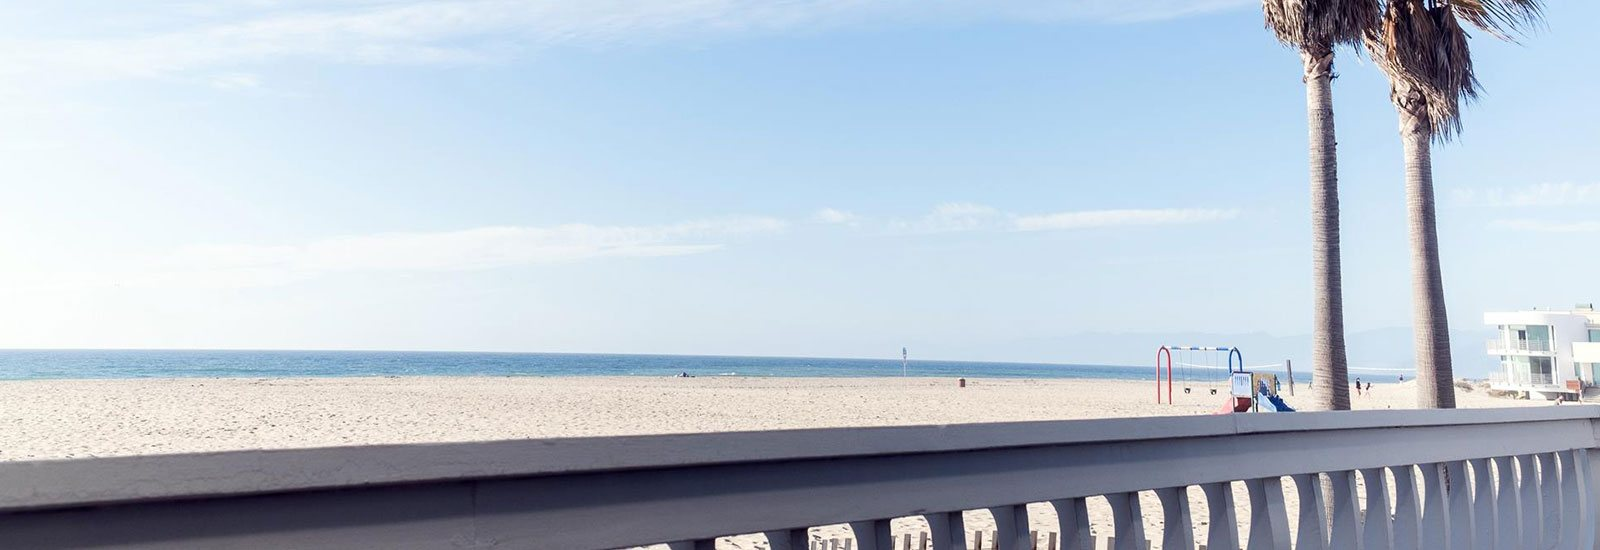 Beach-View-from-Deck-1